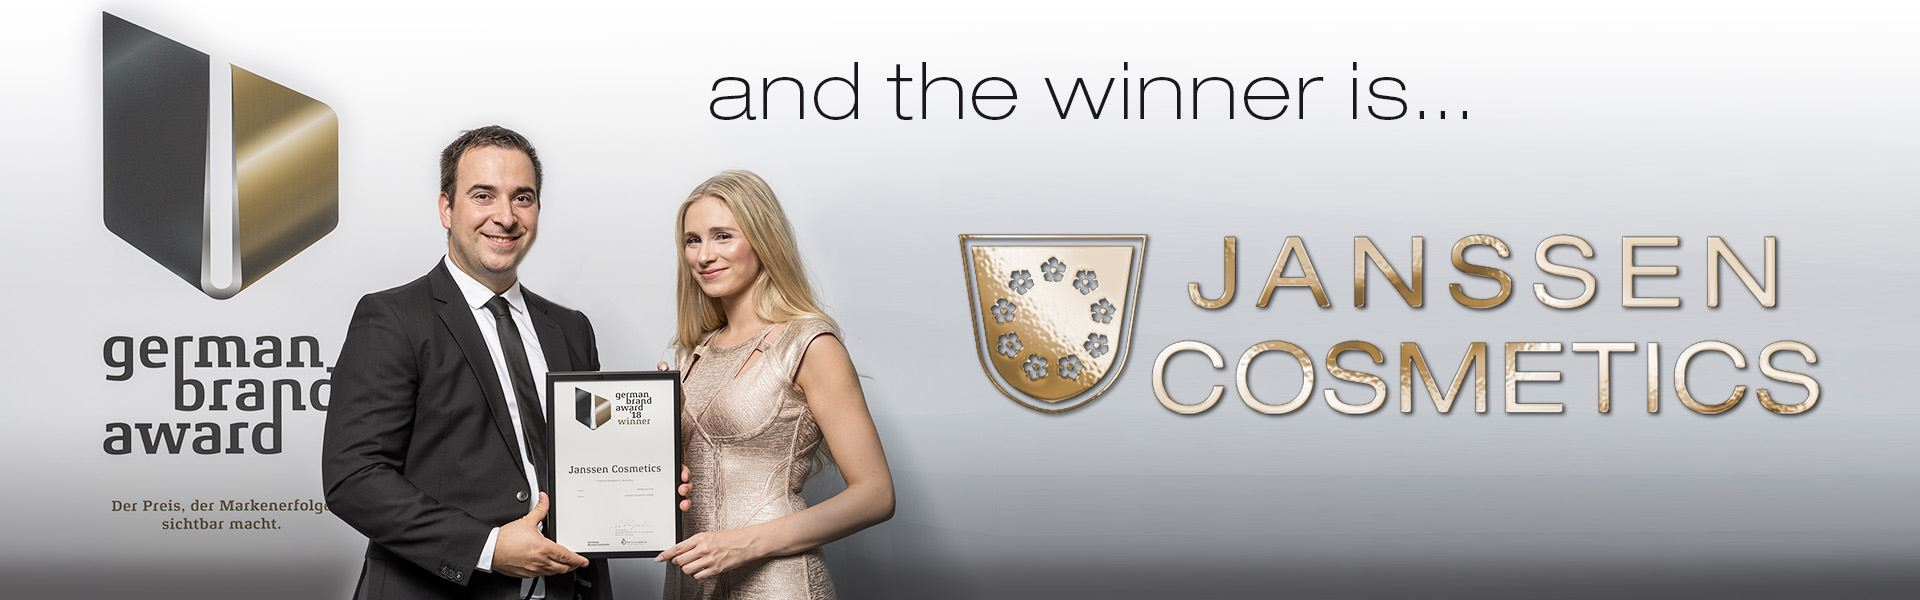 JANSSEN COSMETICS - Winner of the German Brand Award 2018